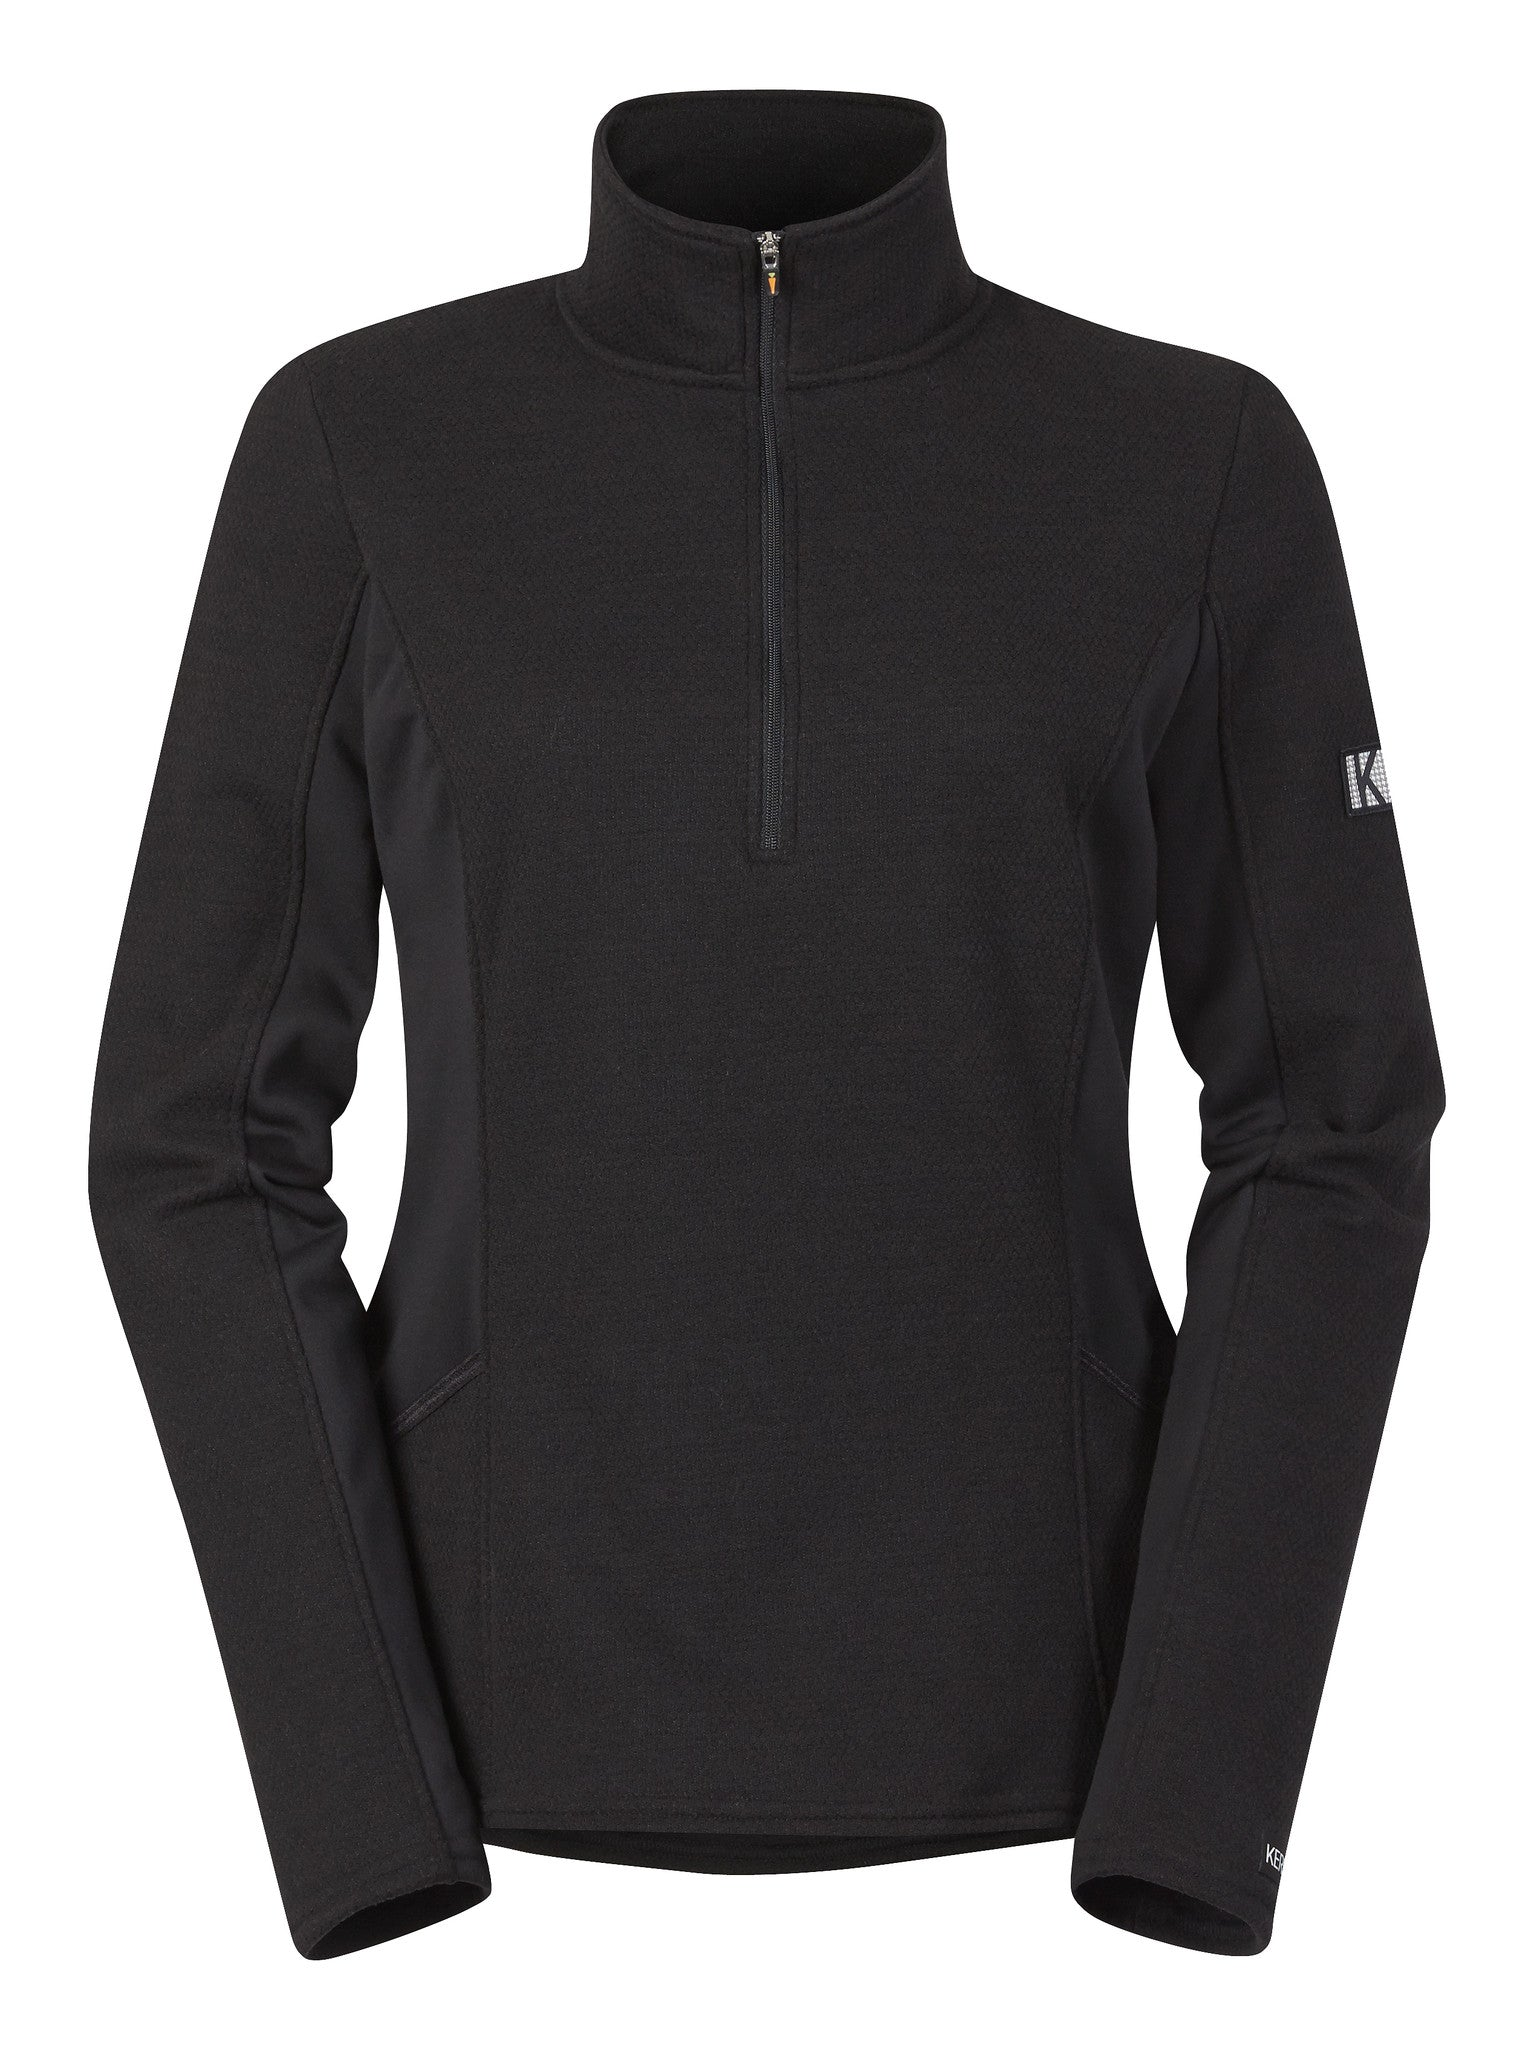 Kerrits Pocket Fleece Zip Neck - SALE